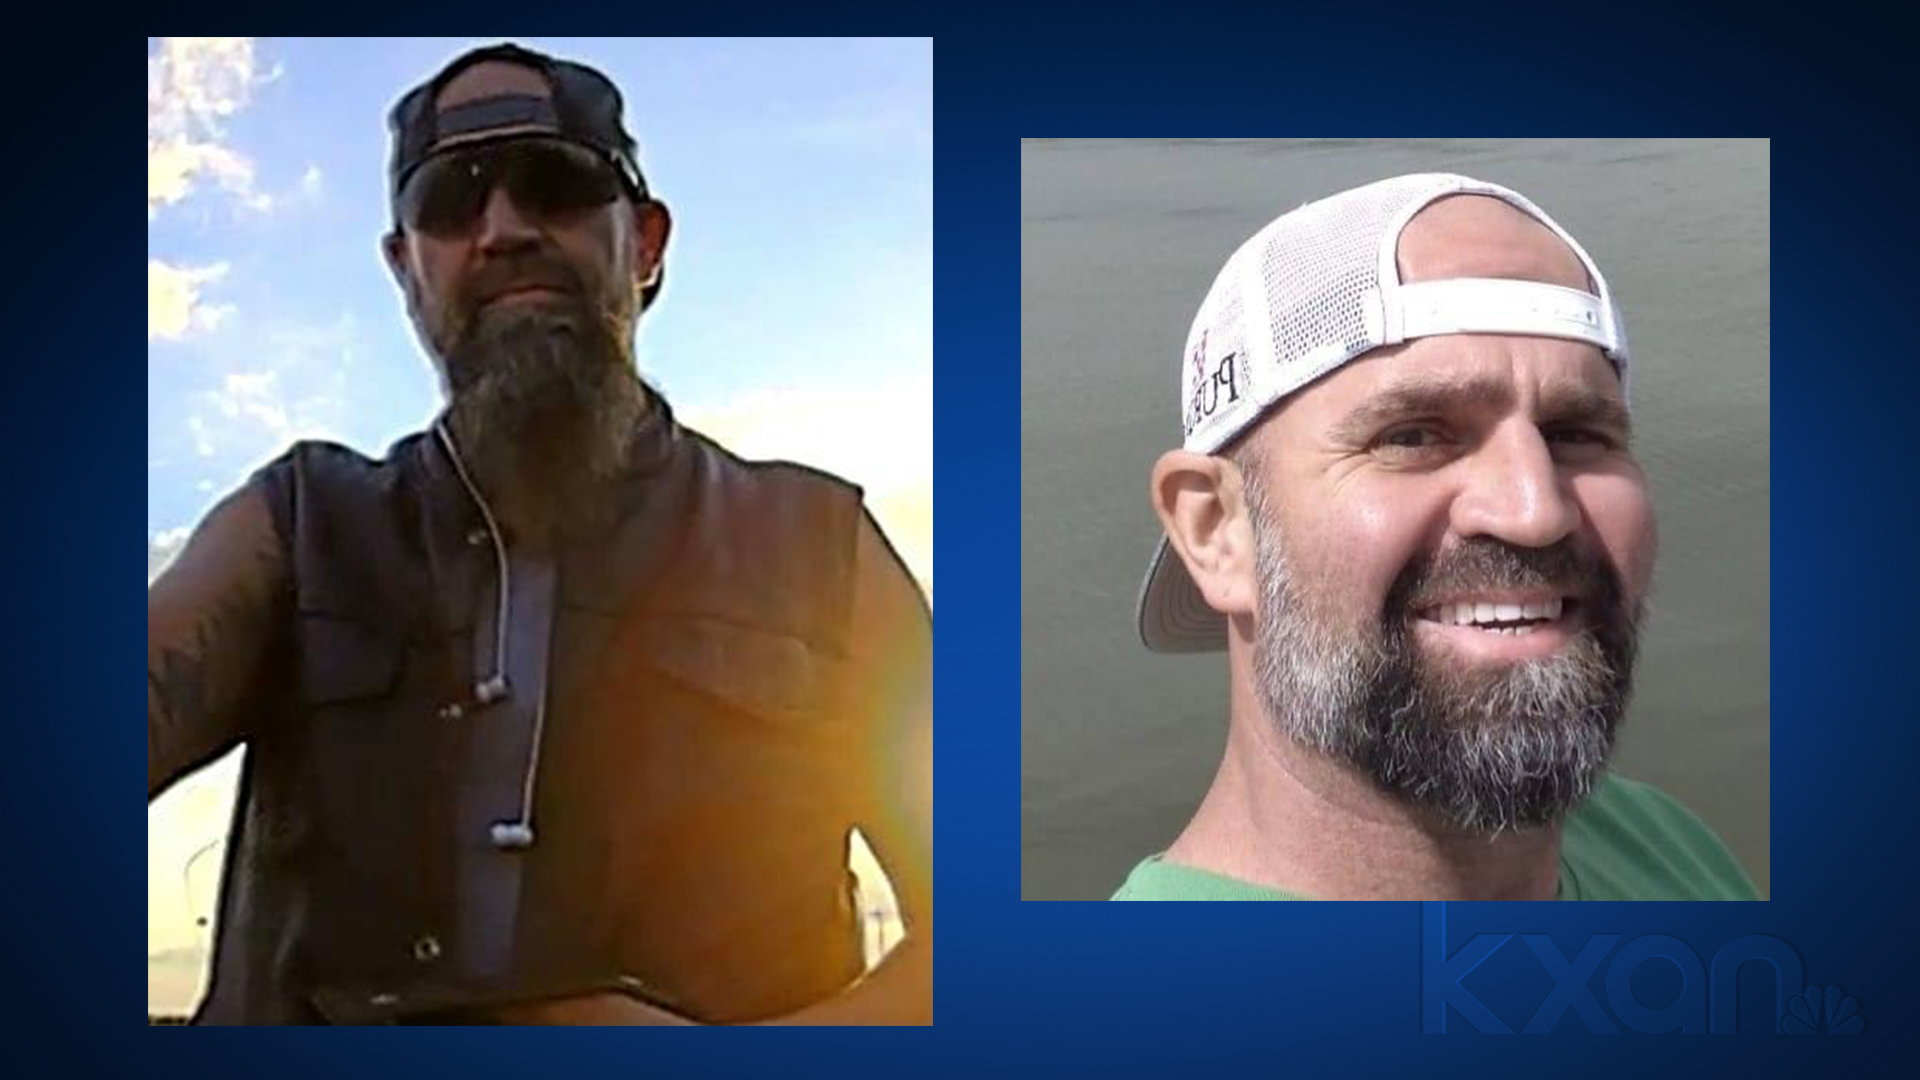 Royce Wood, 43 (Photos from Wise County Sheriff's Office)